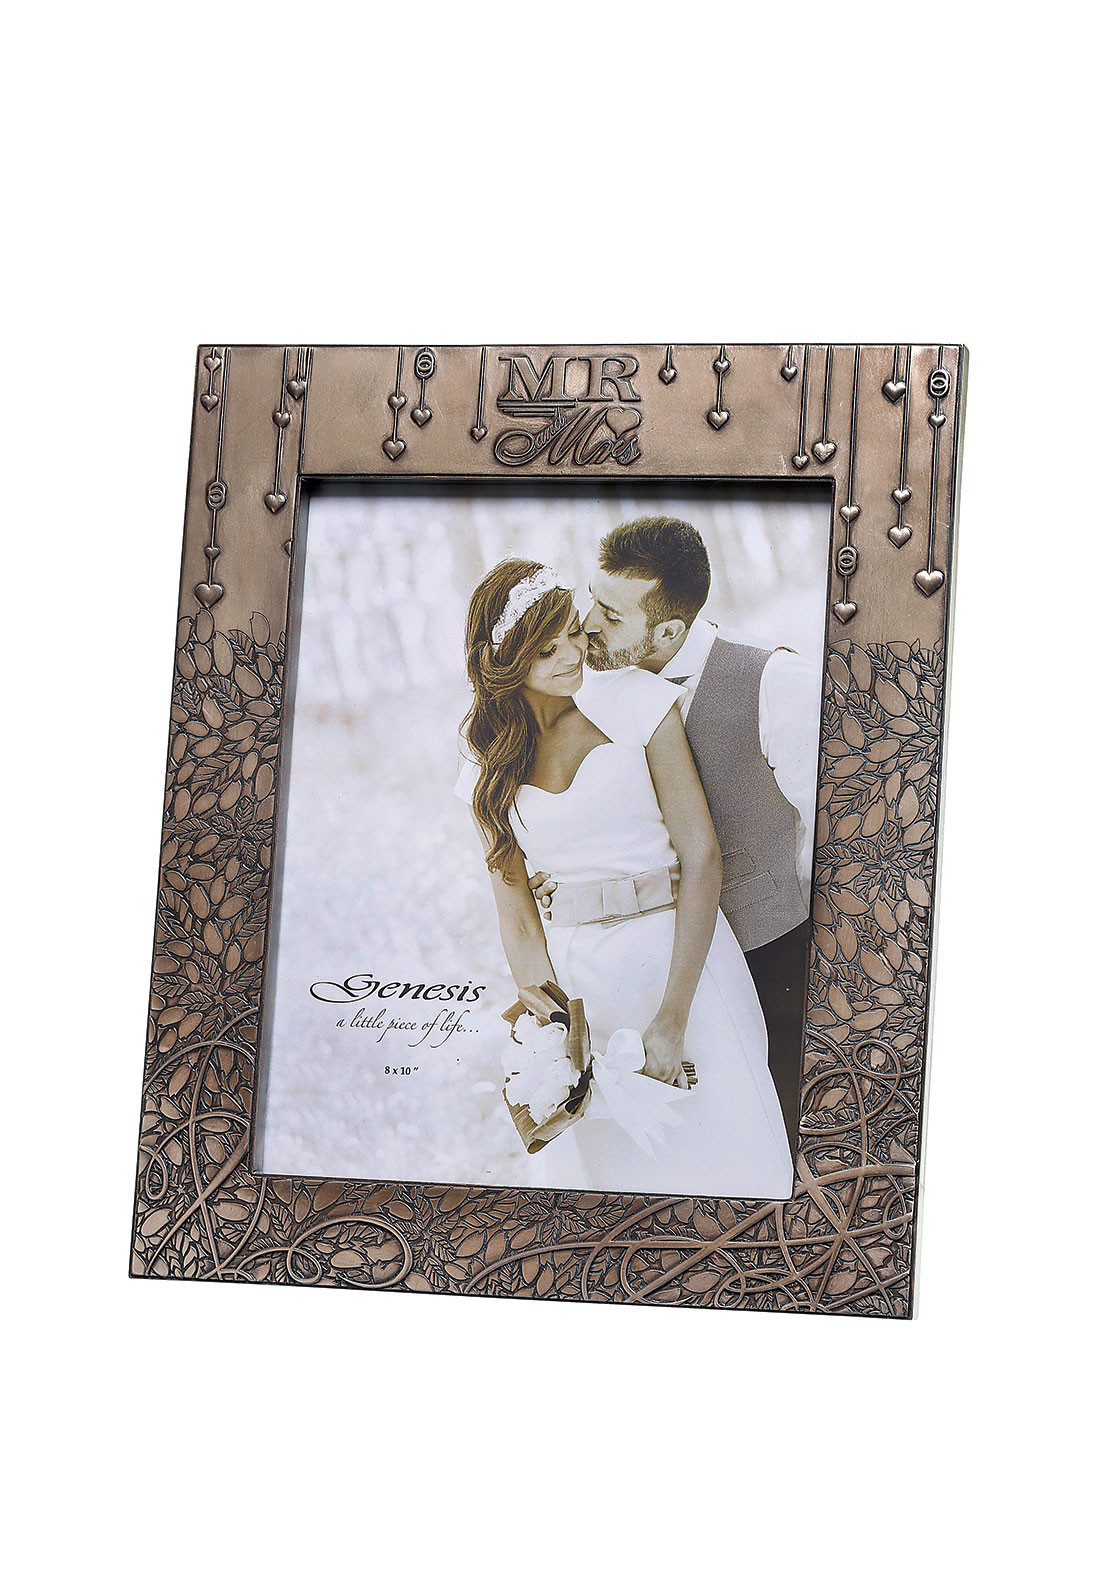 "Genesis Mr & Mrs Photo Frame 8"" x 10"""